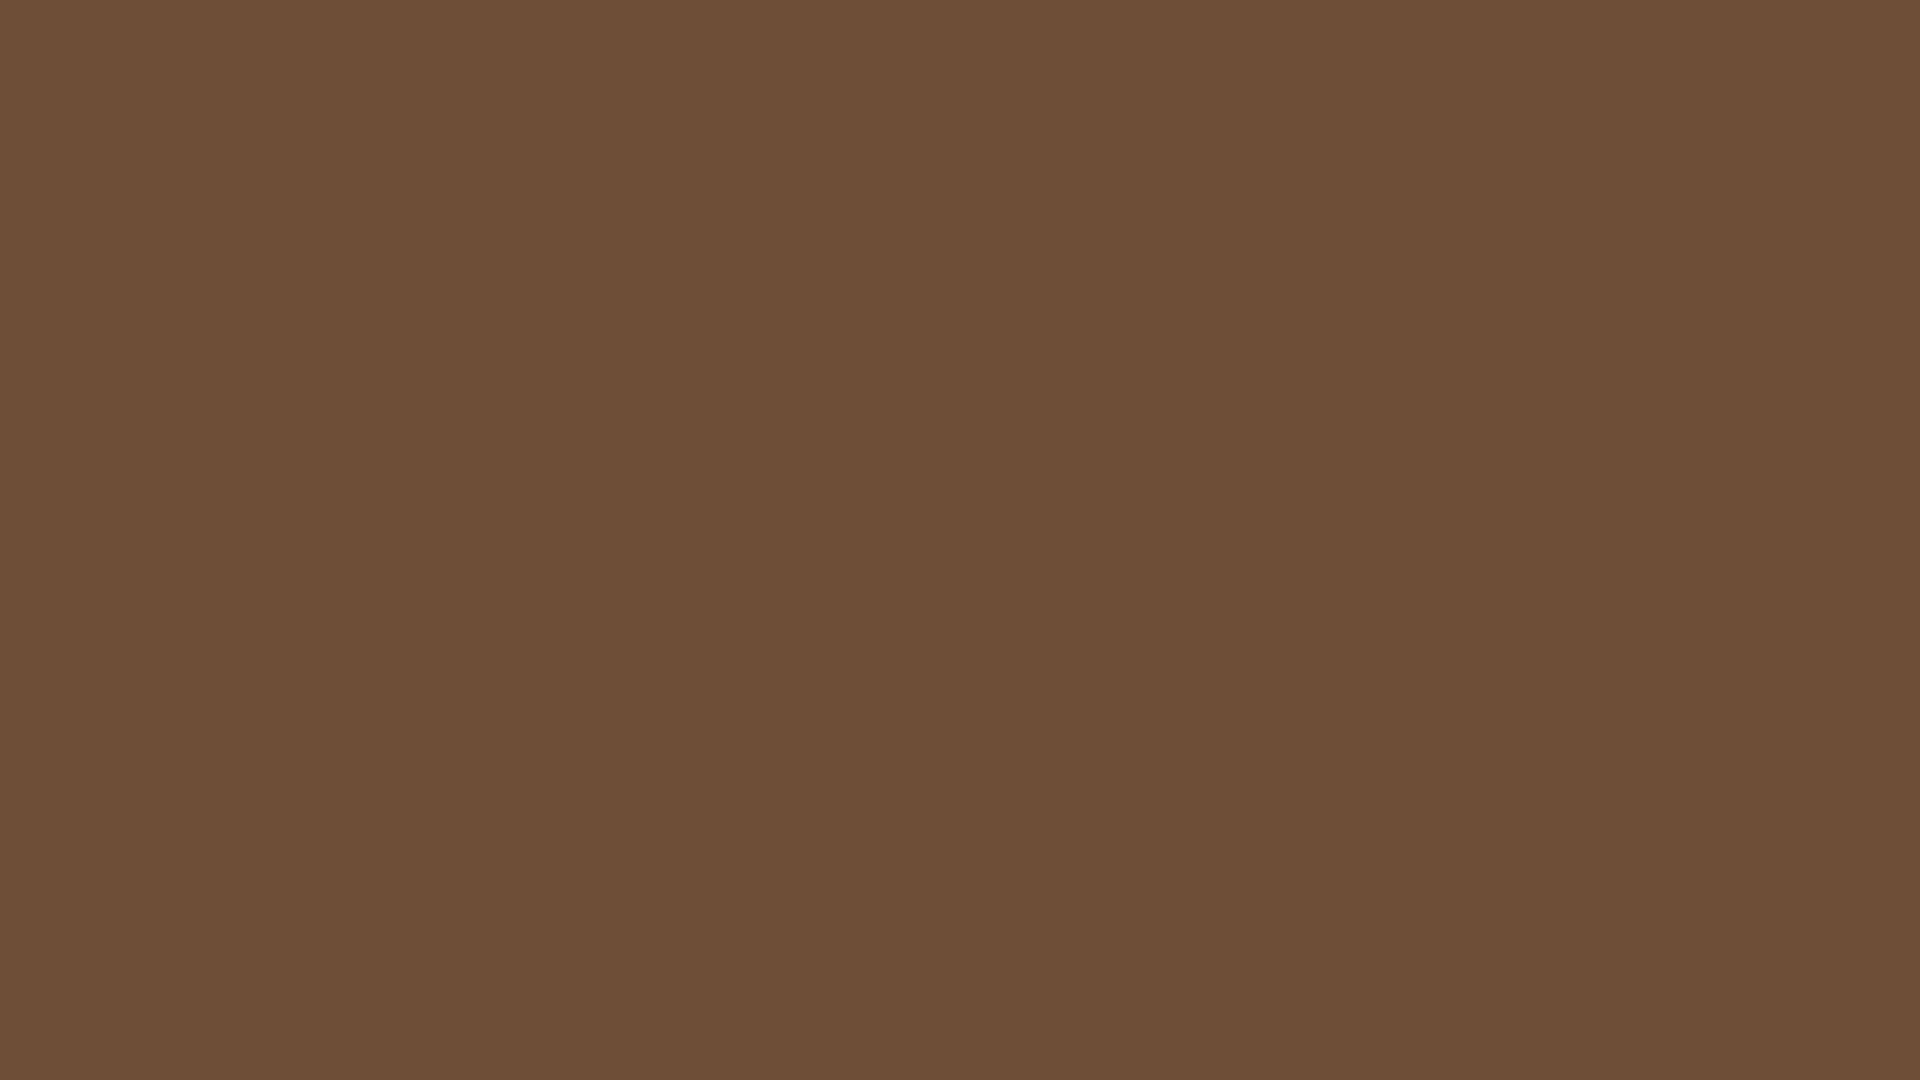 1920x1080 Tuscan Brown Solid Color Background